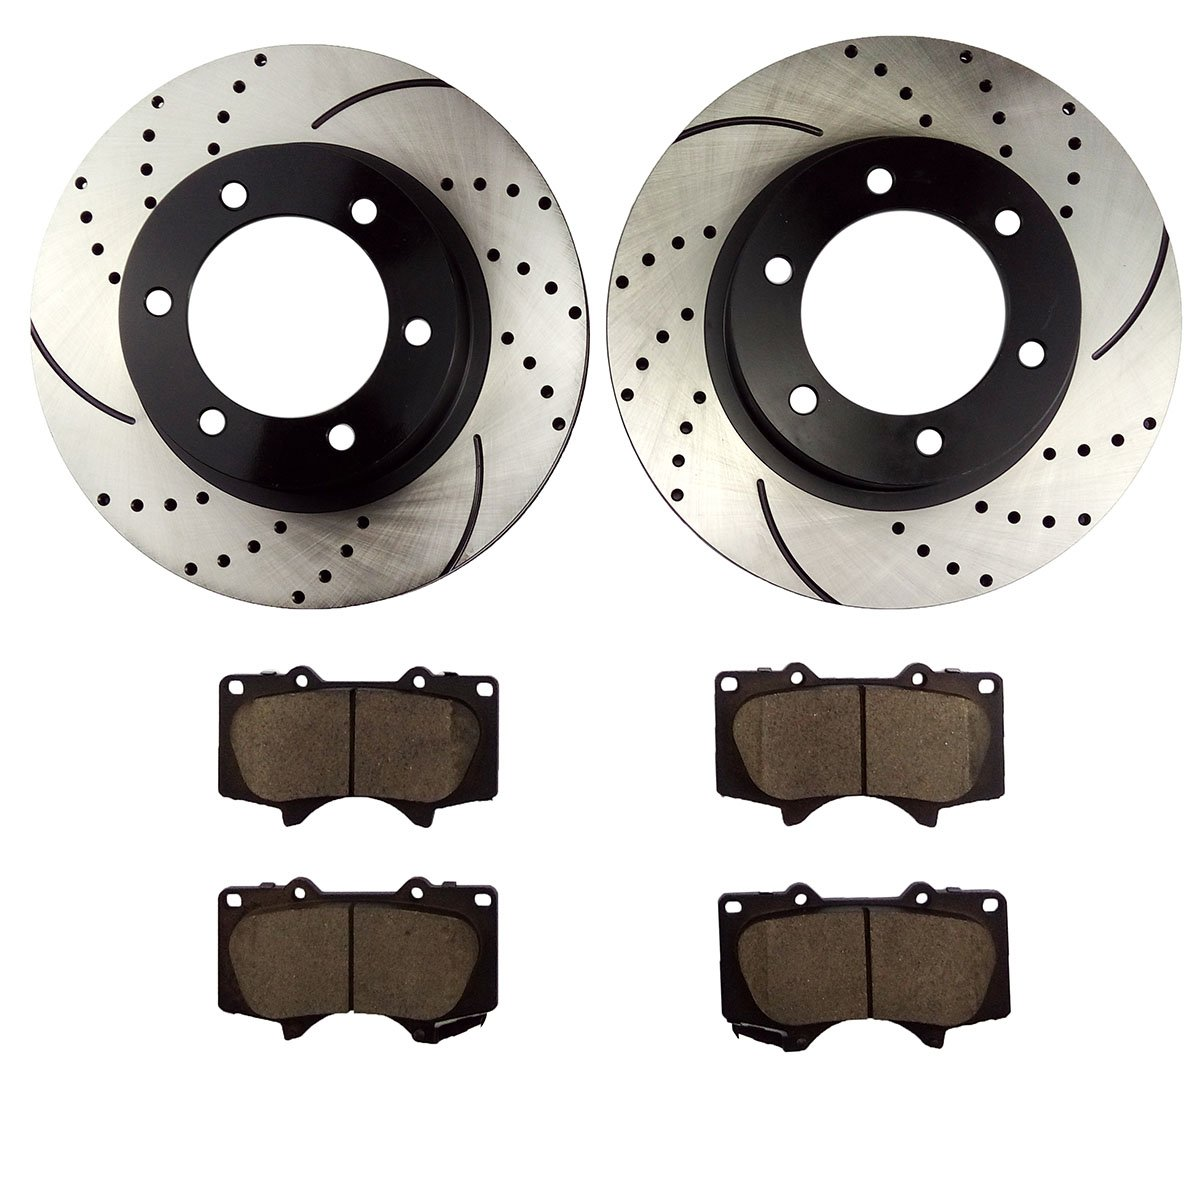 Atmansta QPD10046 Front Brake kit with Drilled//Slotted Rotors and Ceramic Brake pads for Toyota 4Runner FJ Cruiser Tacoma QD10545 QP20321